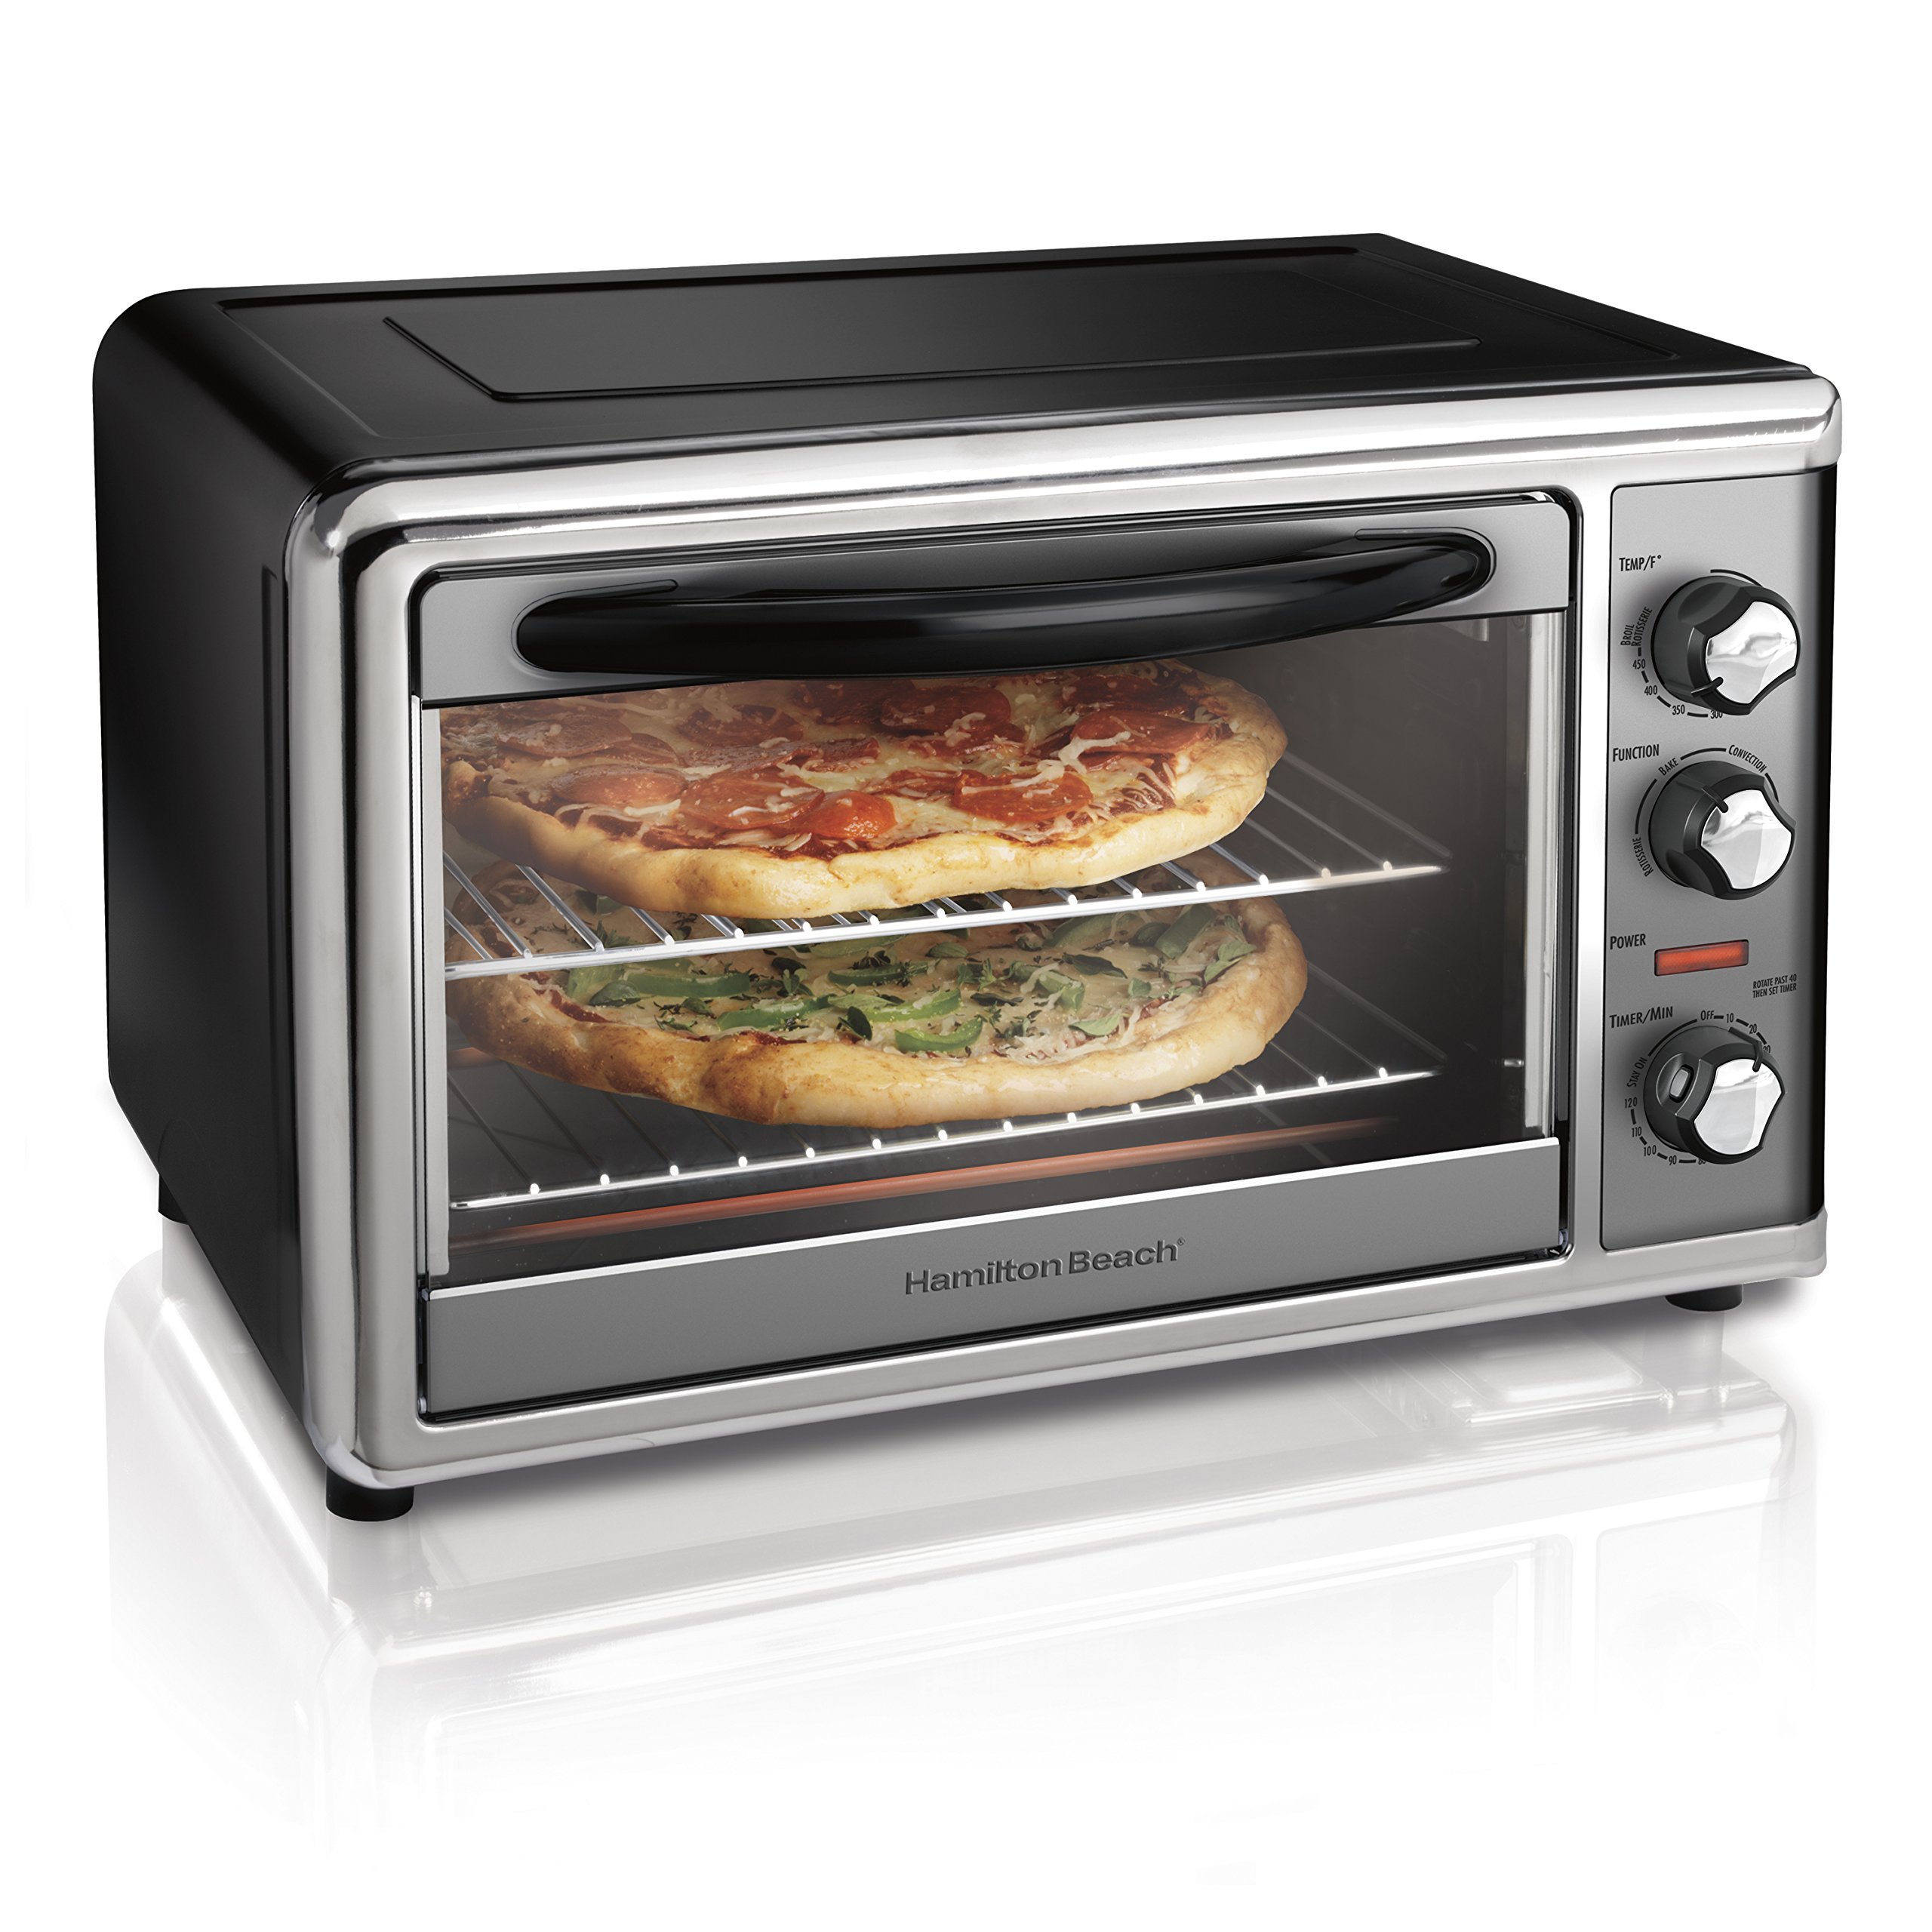 Hamilton Beach 31107D Countertop Oven with Convection & Rotisserie, Large, Stainless Steel by Hamilton Beach